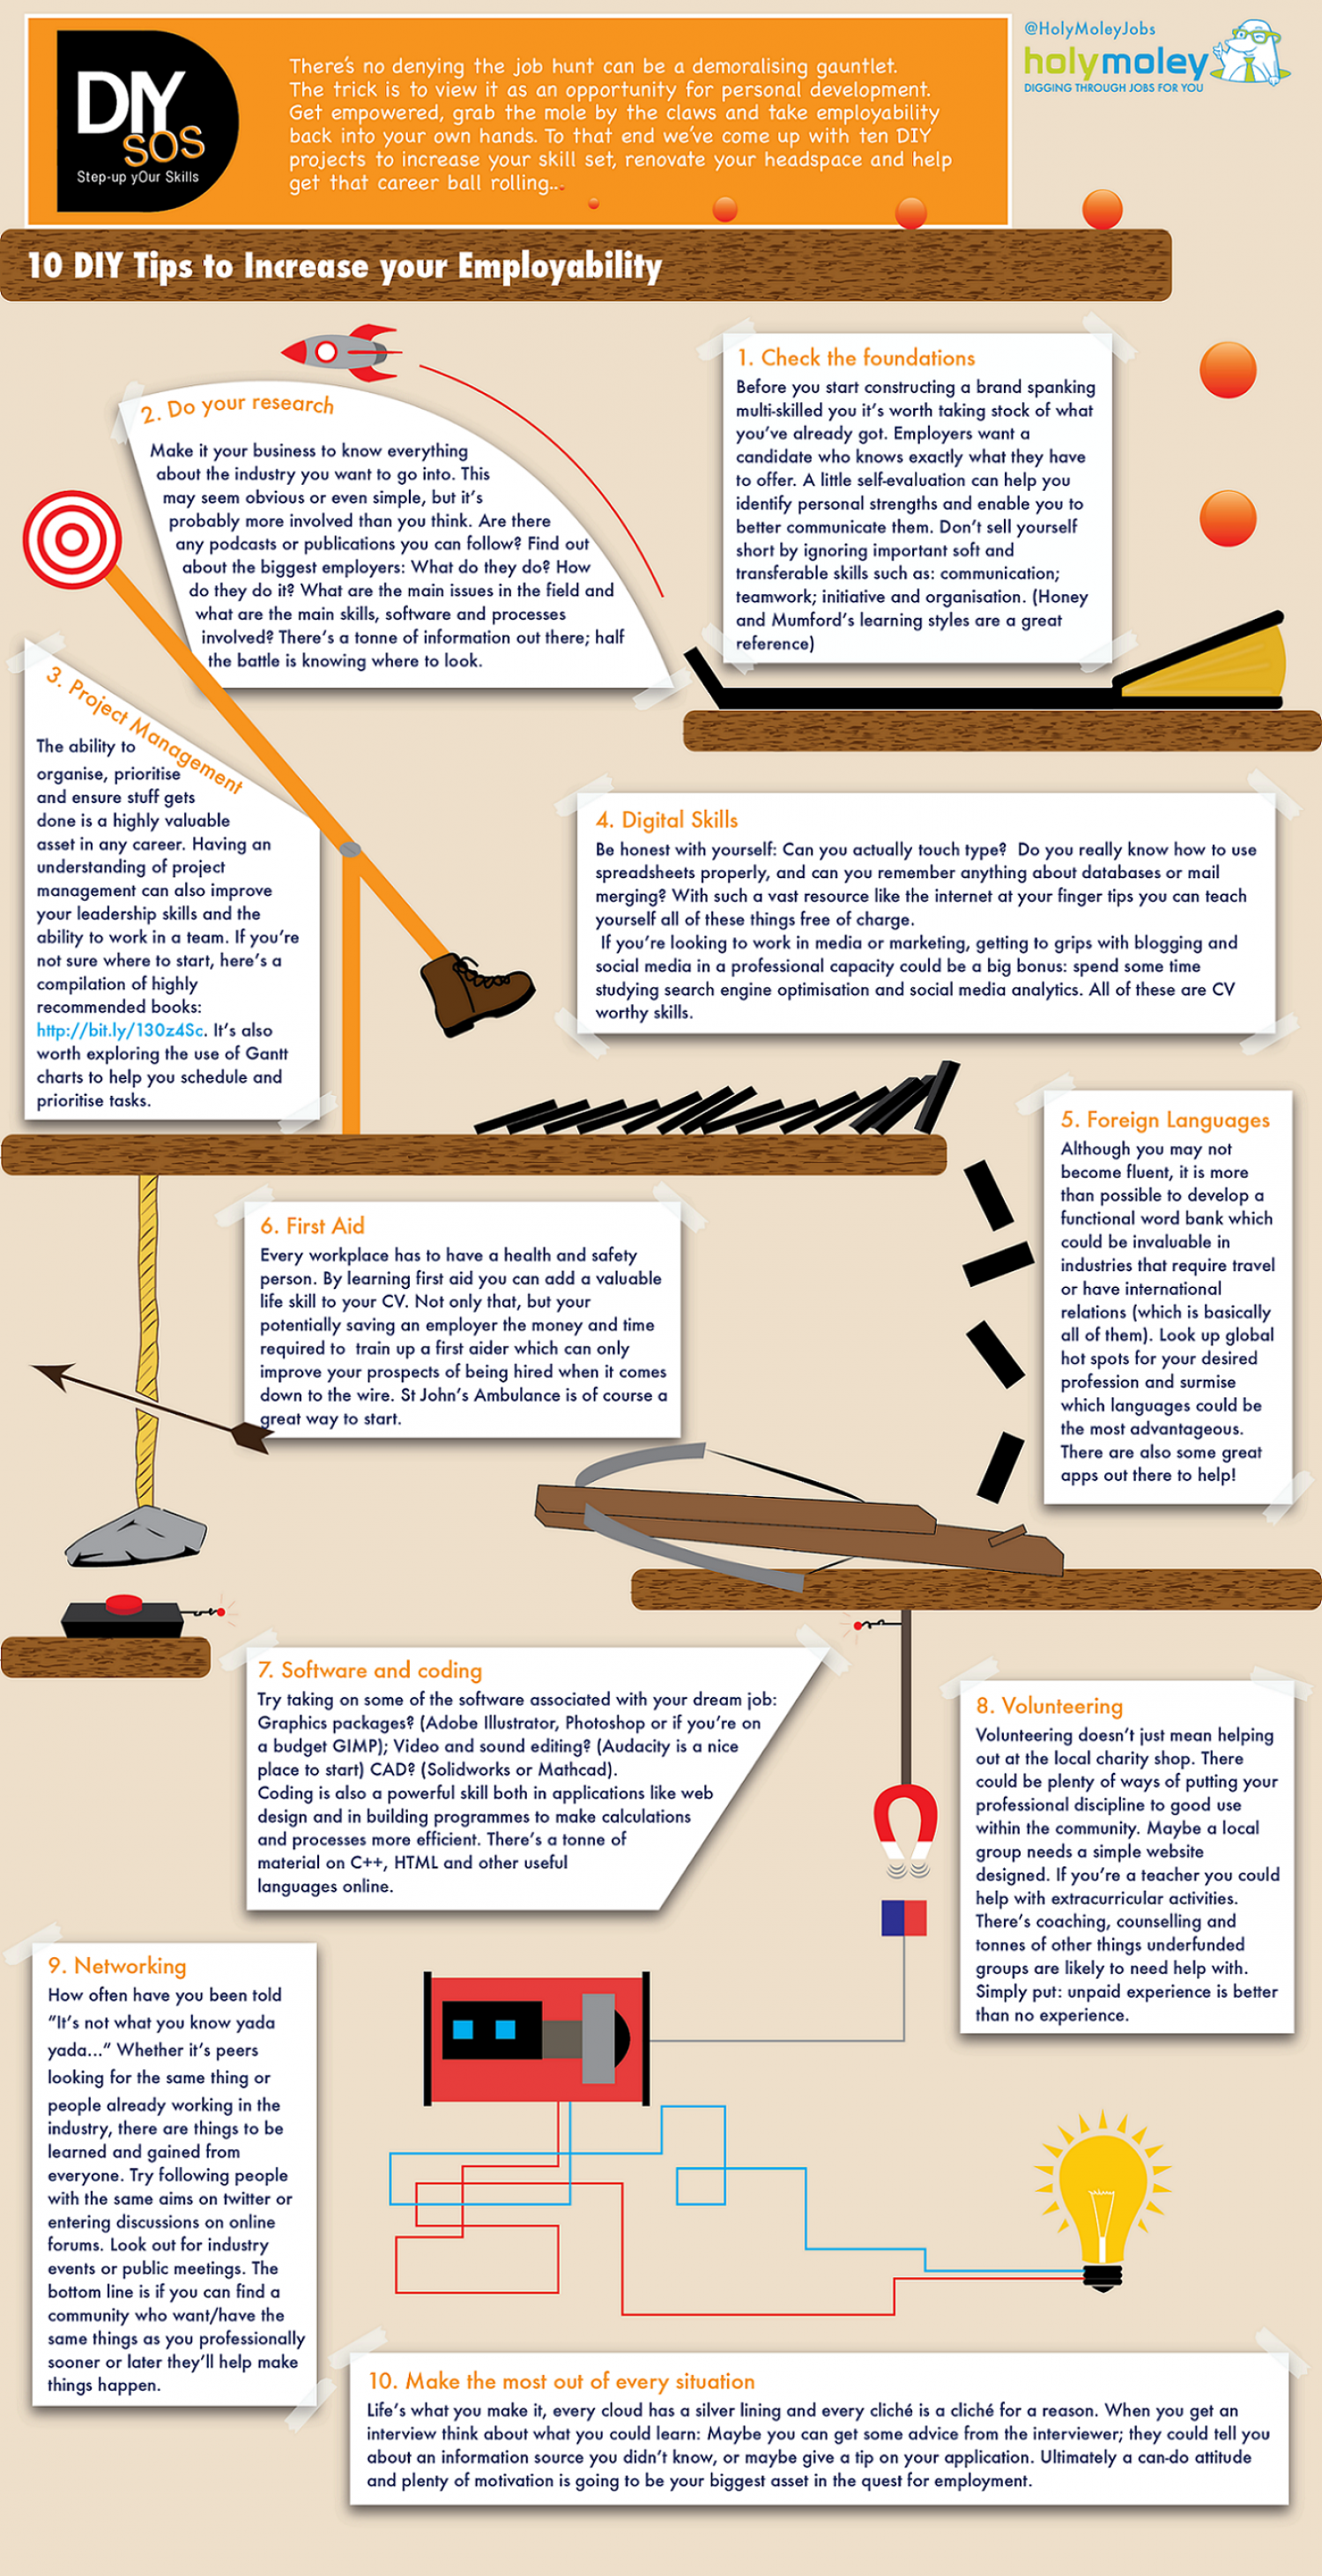 DIY SOS: Step-up yOur Skills Infographic